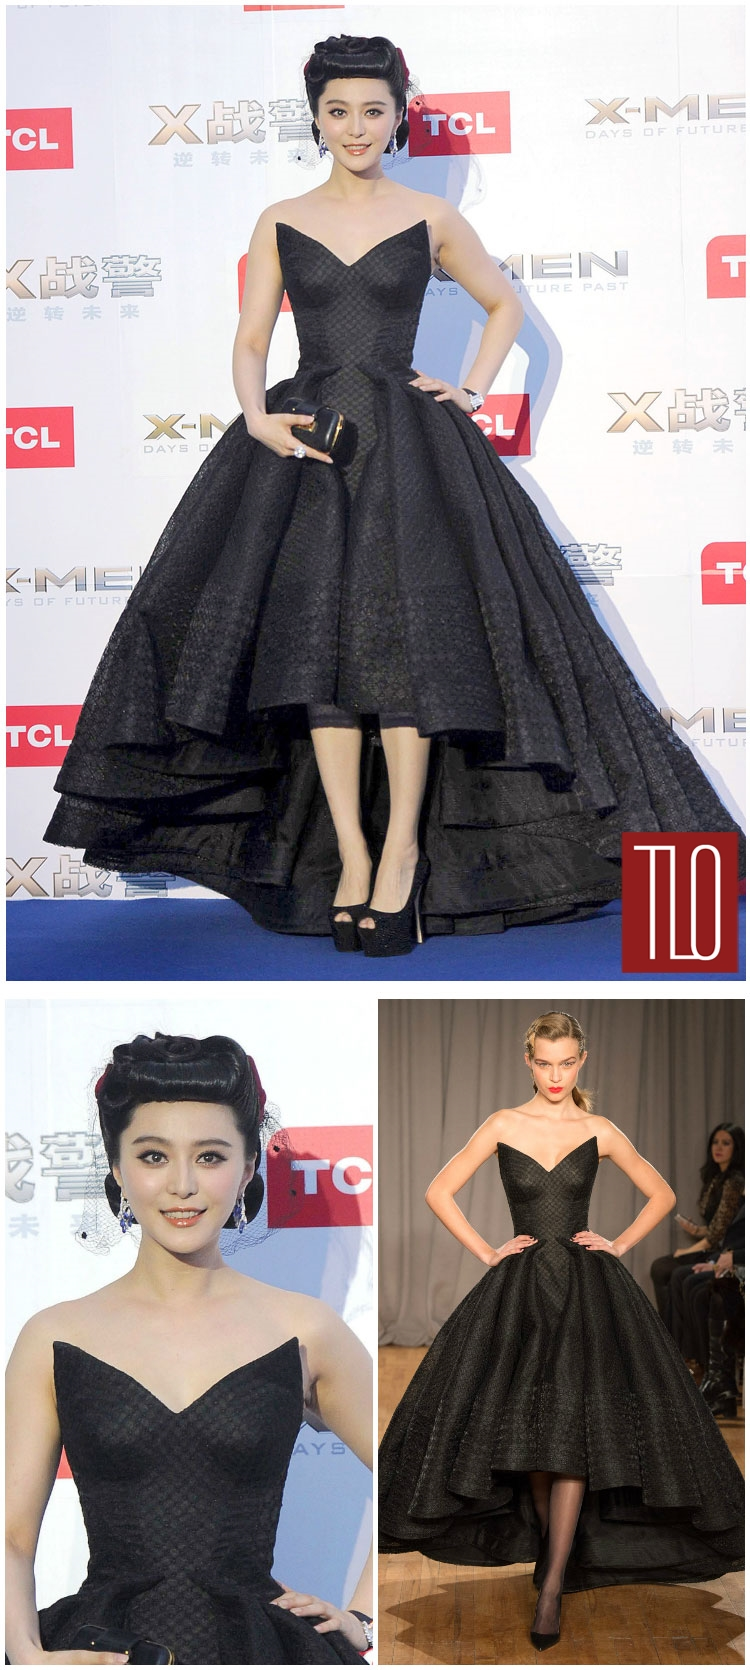 Fan-Bing-Zac-Posen-X-Men-Days-Future-Past-Beijing-Premiere-Tom-Lorenzo-Site-TLO (1)